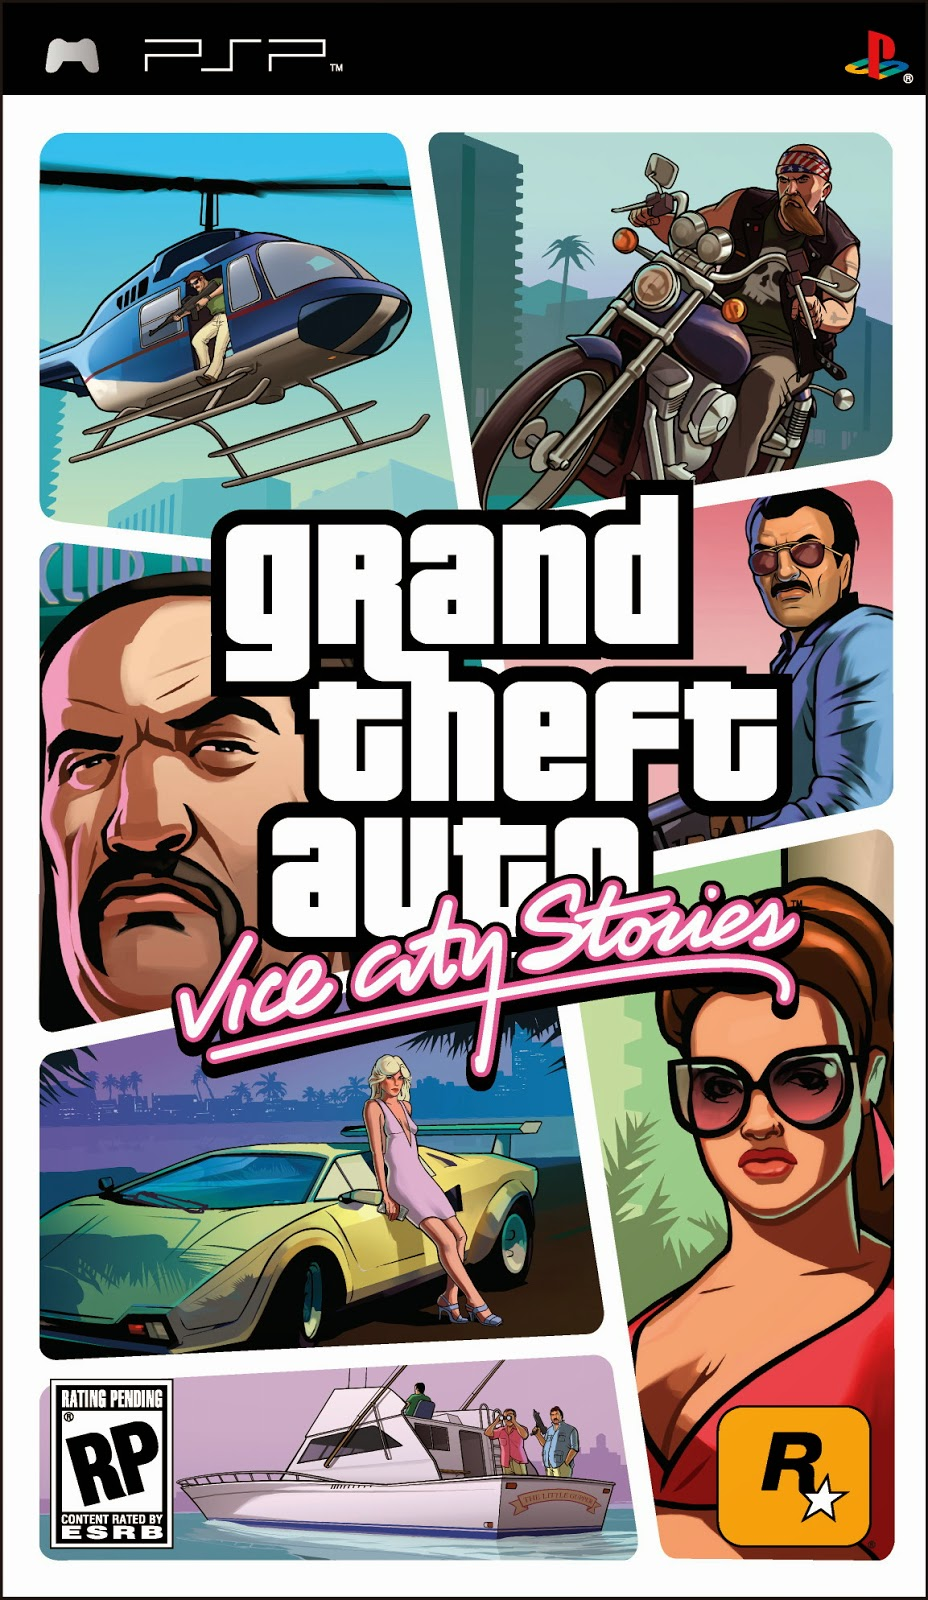 Grand Theft Auto Vice City Stories Apk Android